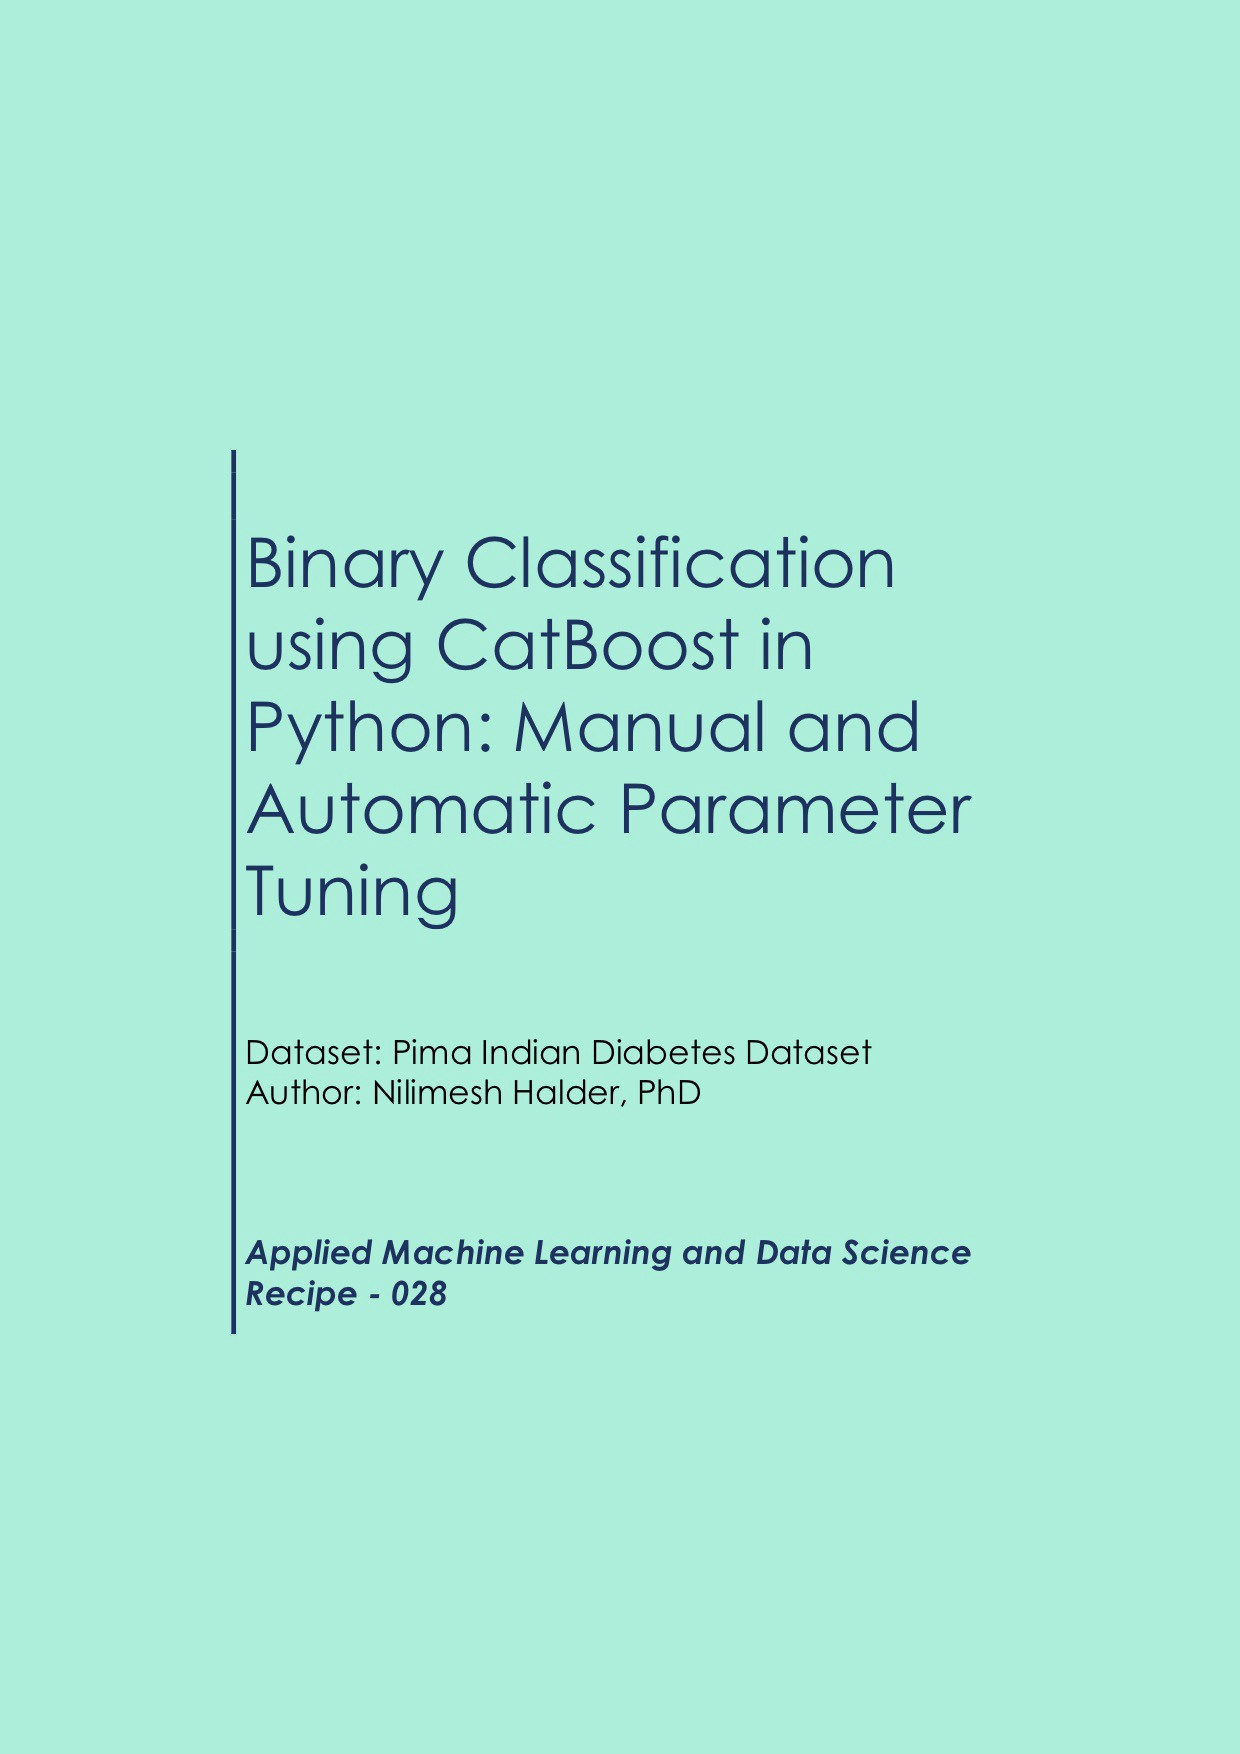 Binary Classification using CatBoost in Python: Manual and